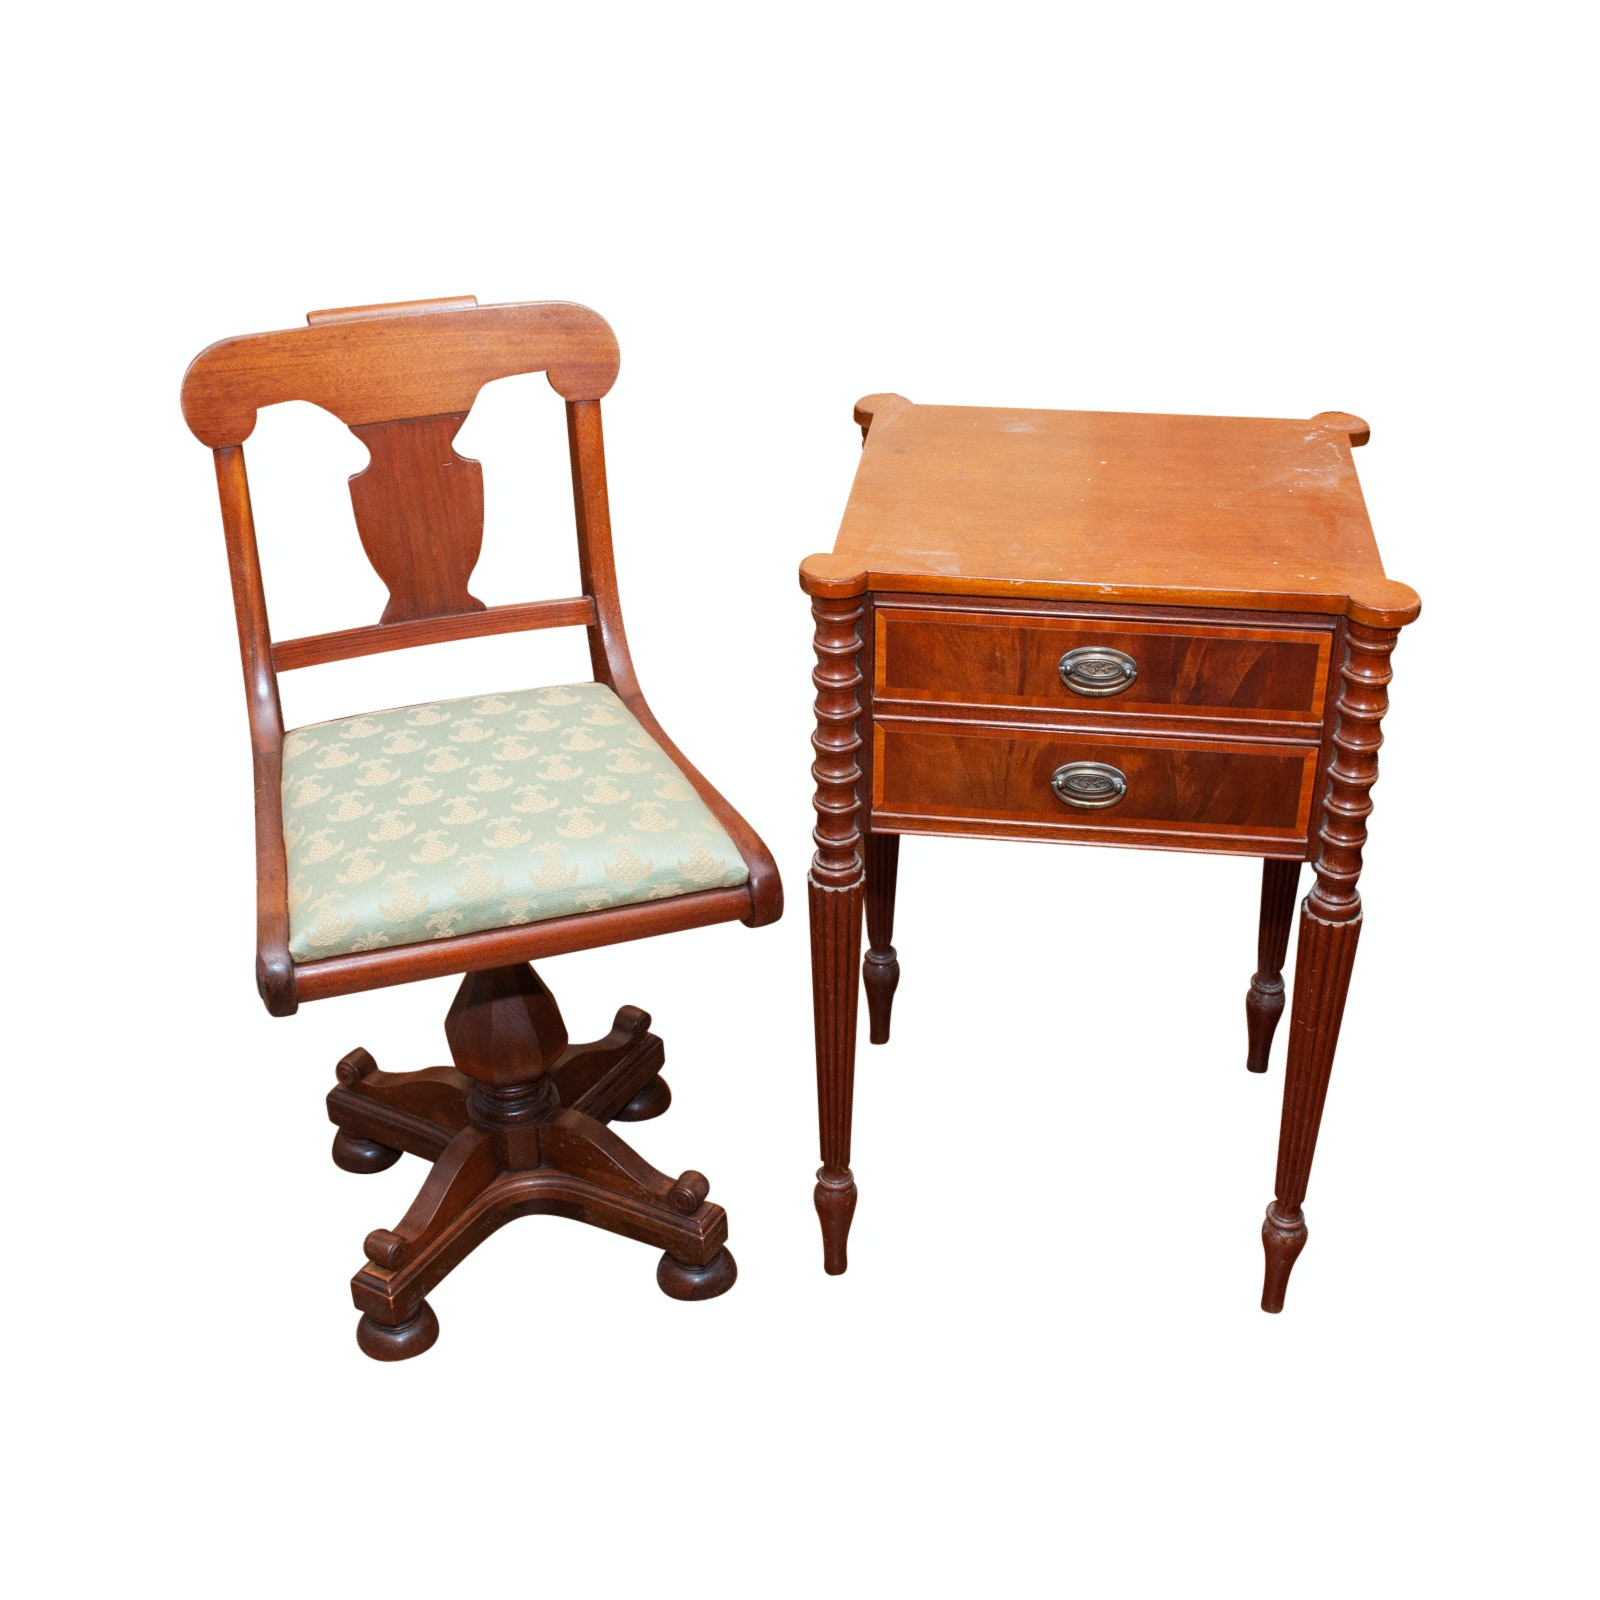 Cowperthwait Furniture Co. Wood End table with Antique Piano Chair